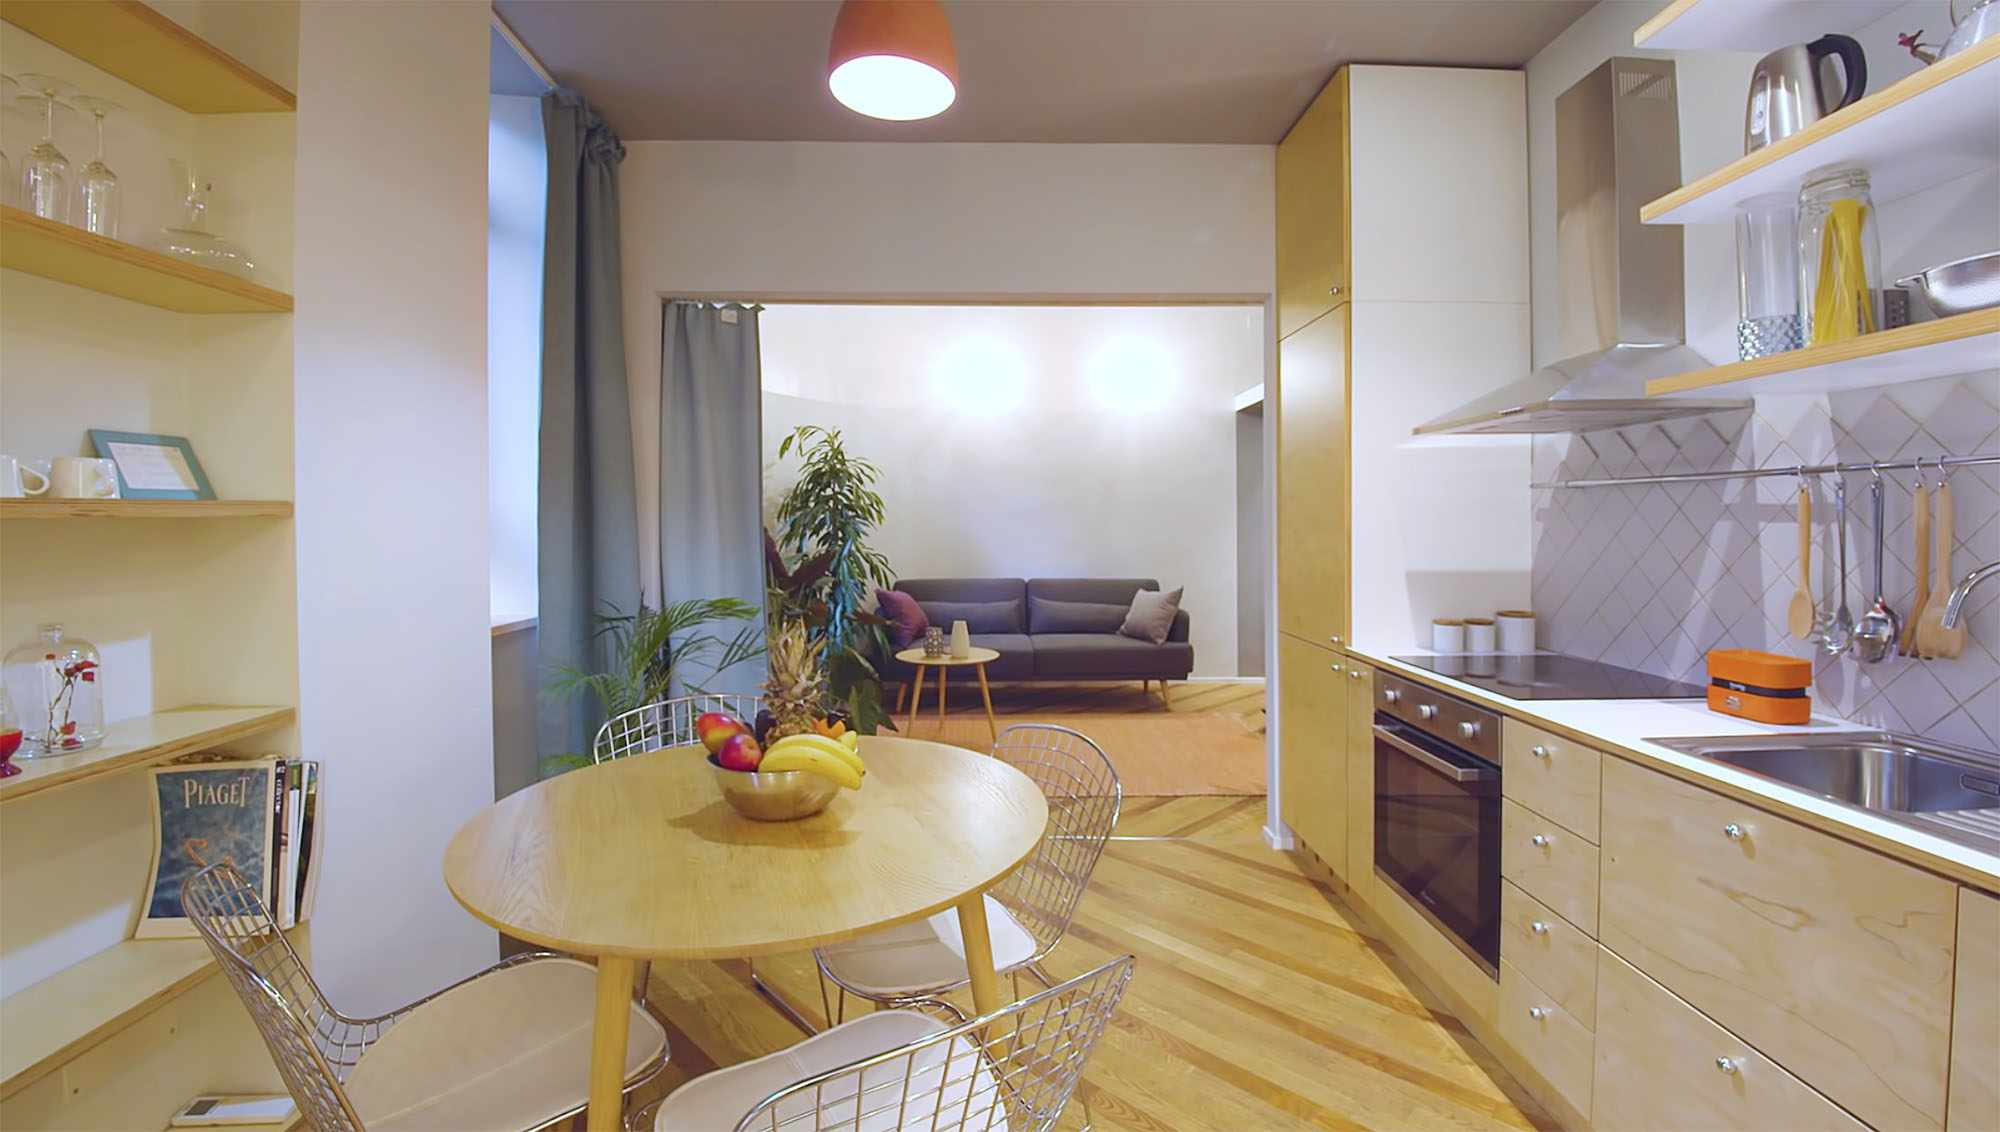 House In Constant Transition small apartment renovation ATOMAA kitchen